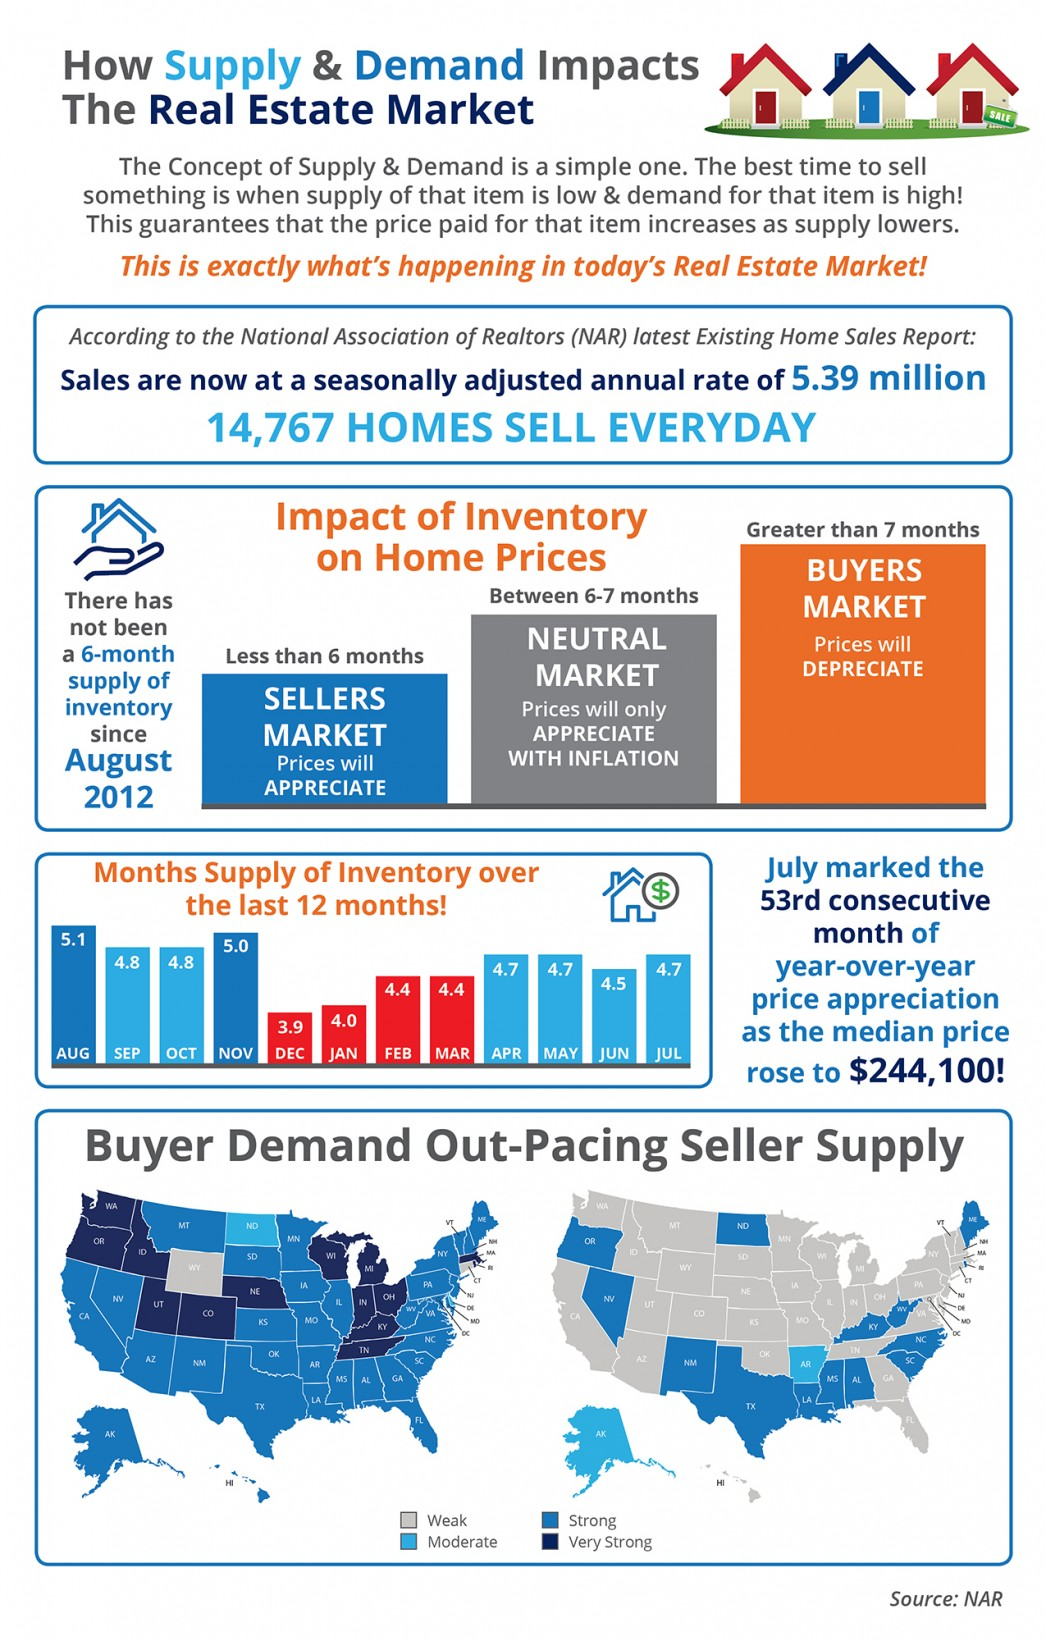 How Supply & Demand Impacts the Real Estate Market [INFOGRAPHIC] | MyKCM